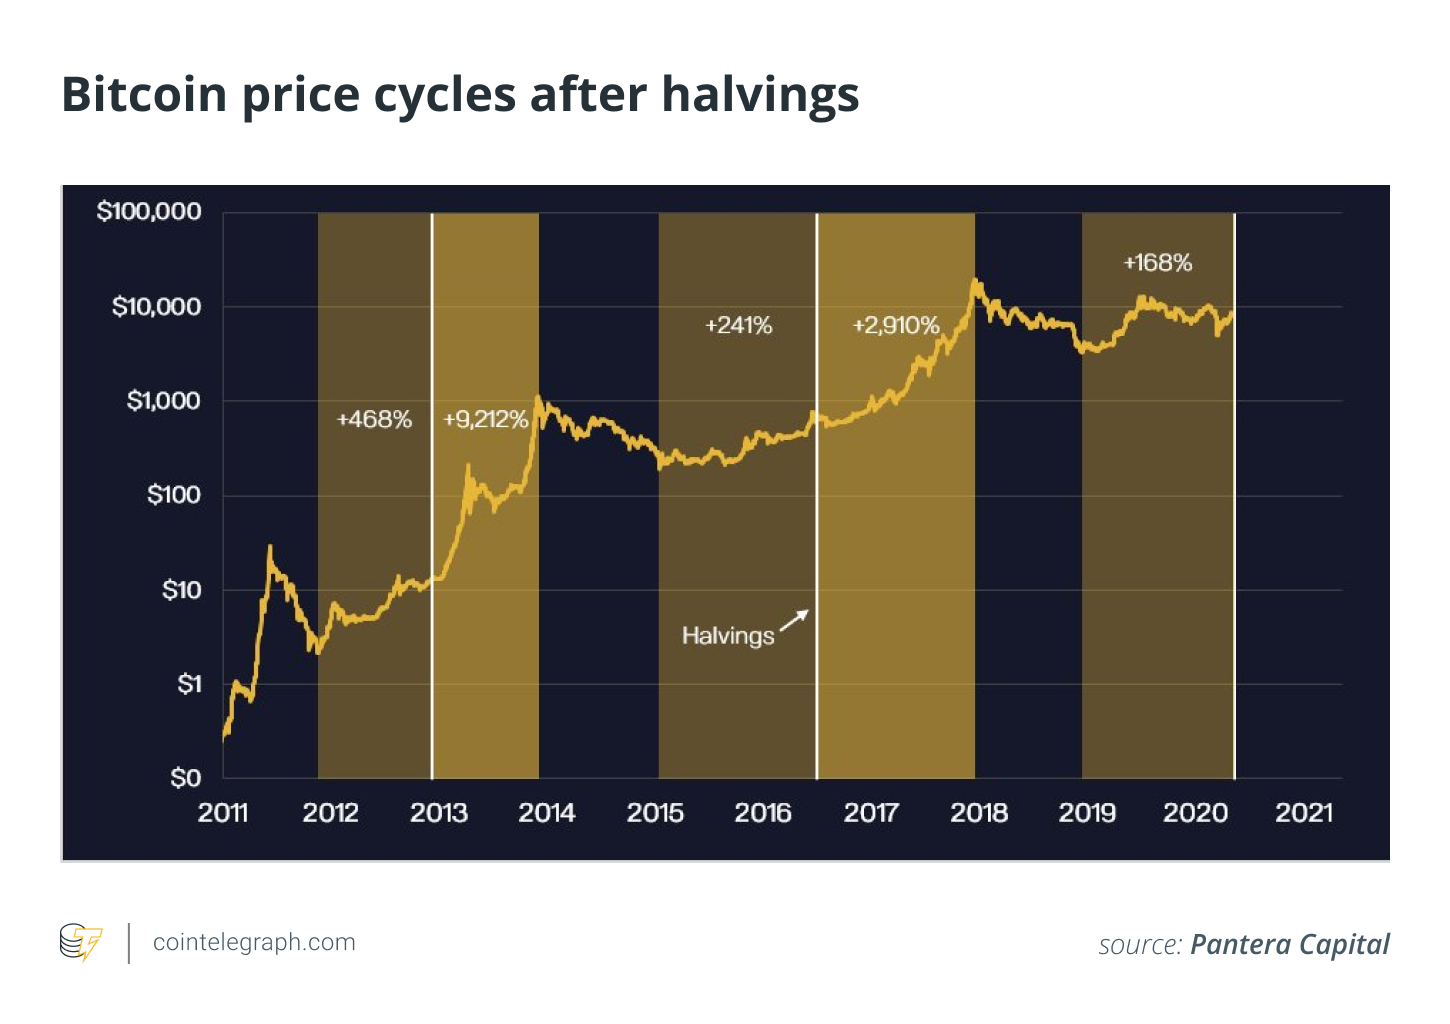 Bitcoin price cycles after halving